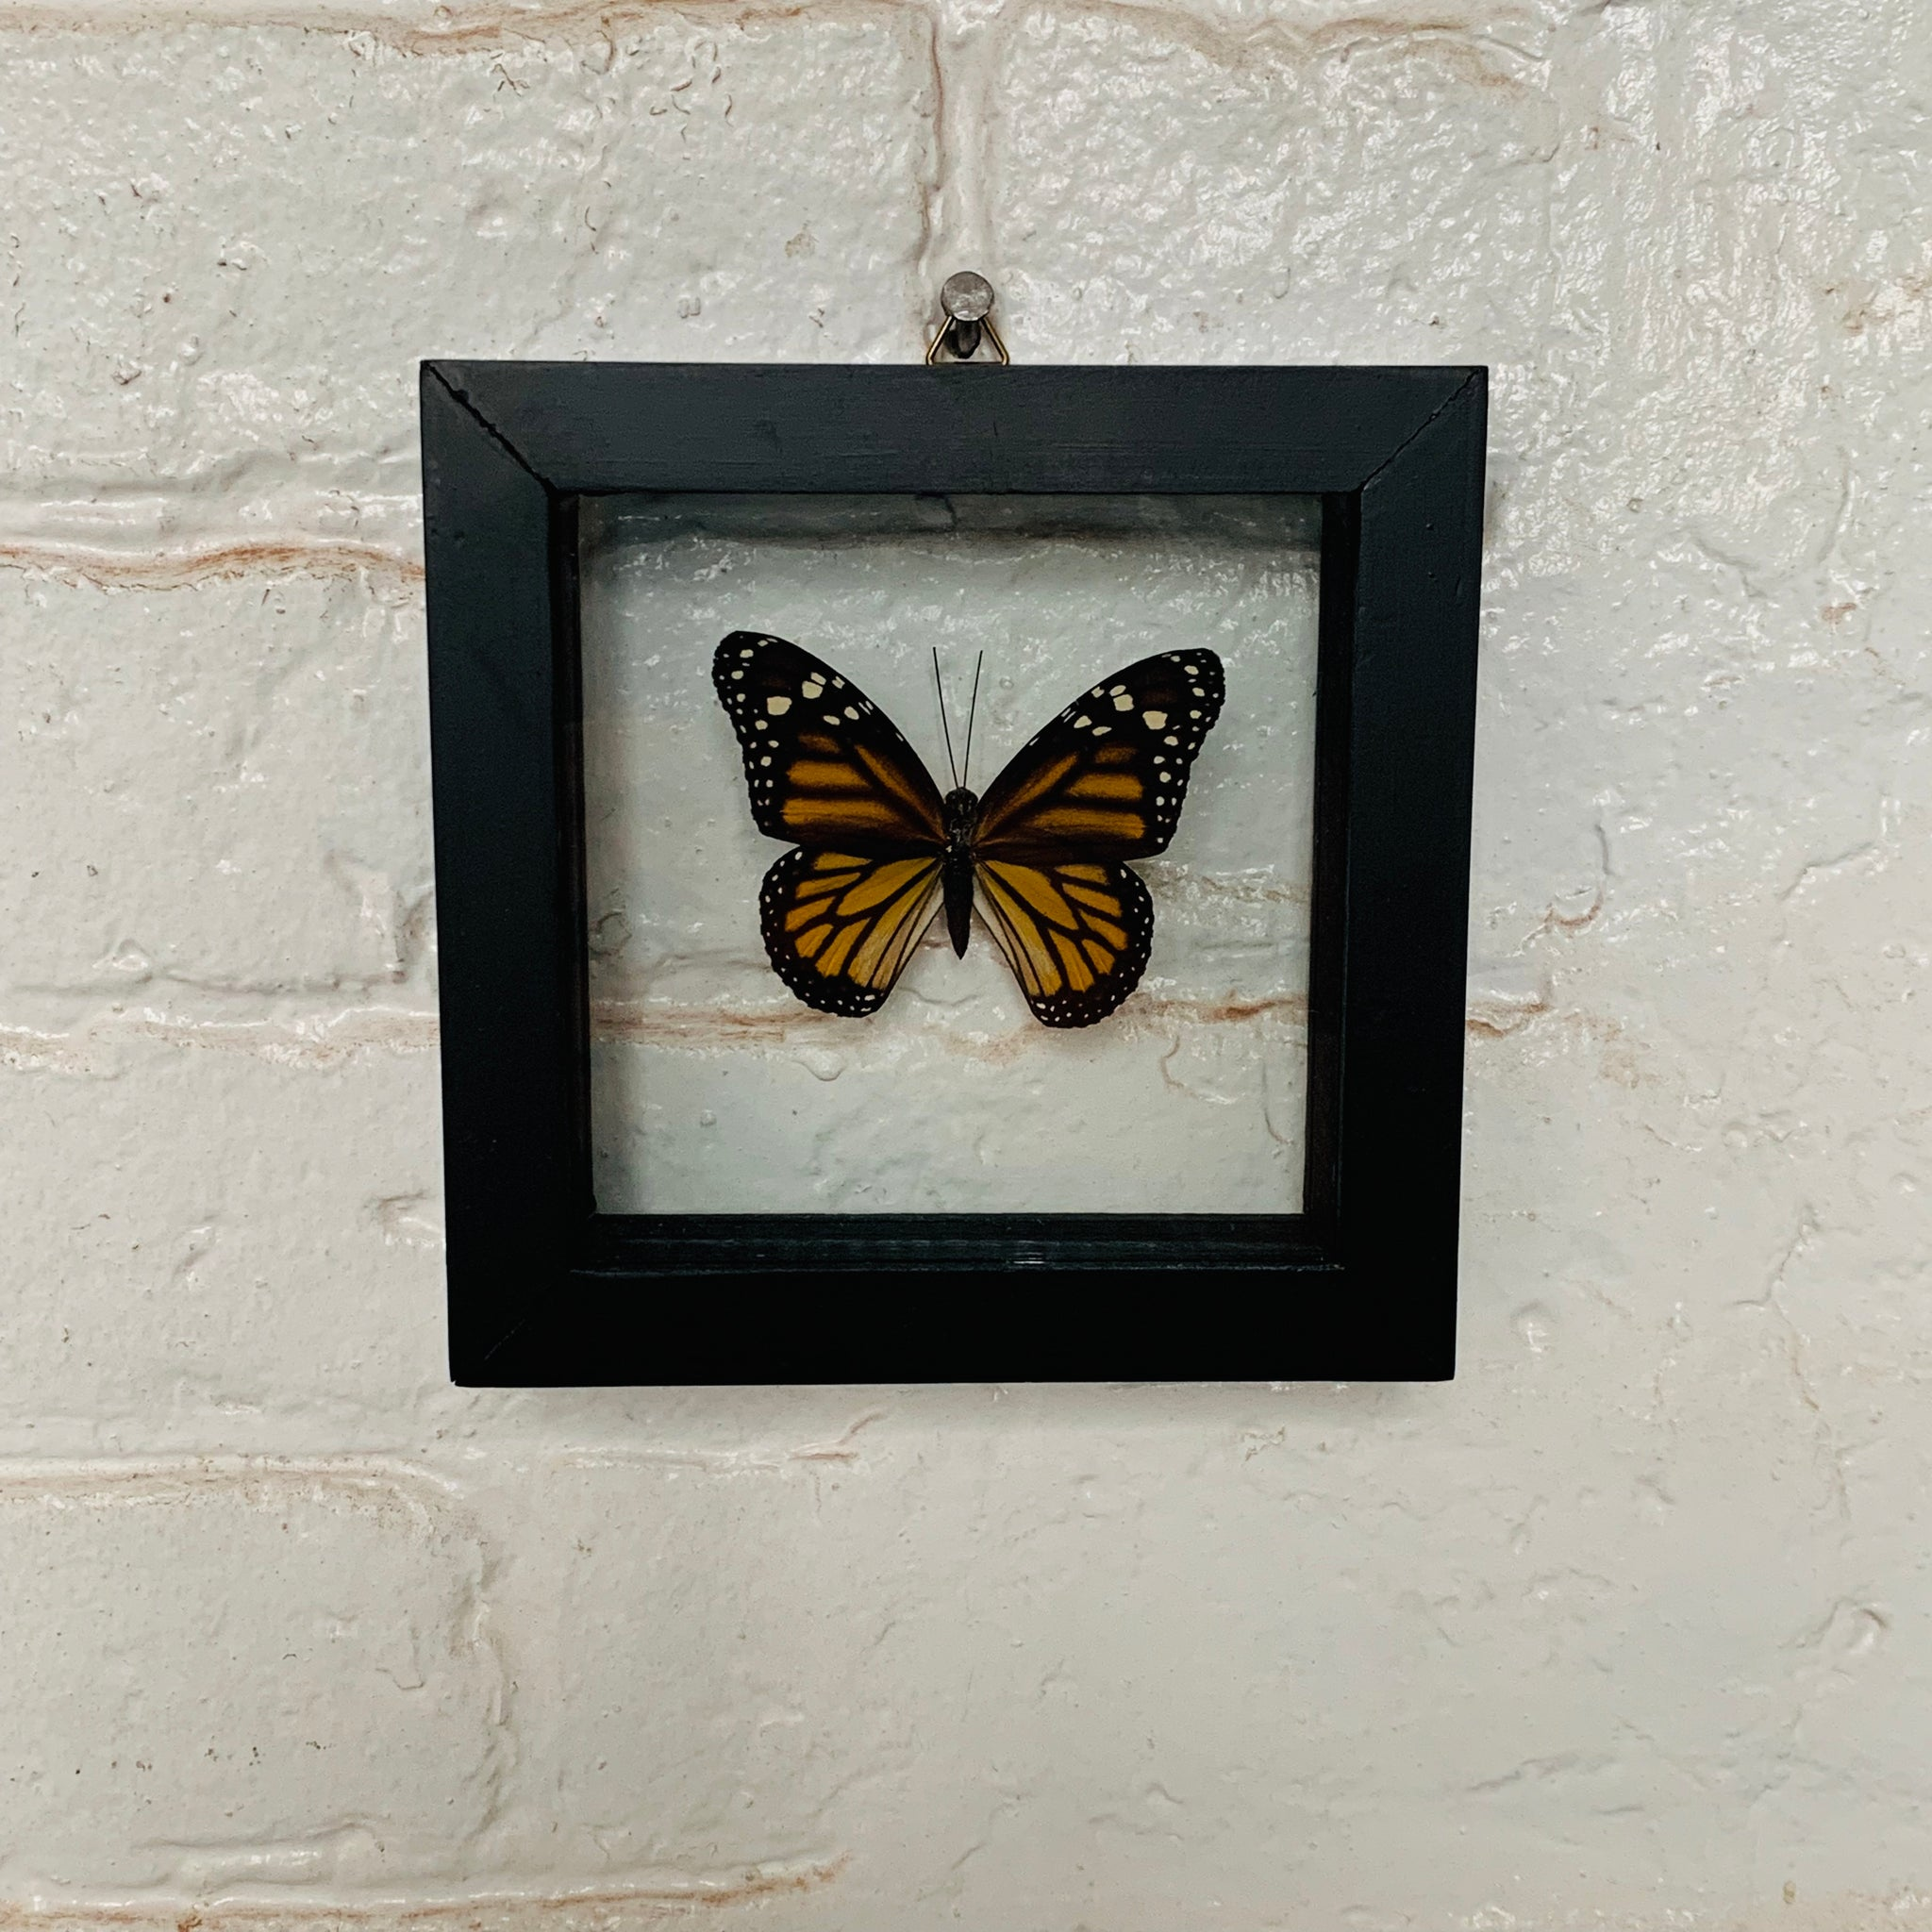 Framed Butterflies - Danaus Plexippus (Monarch)